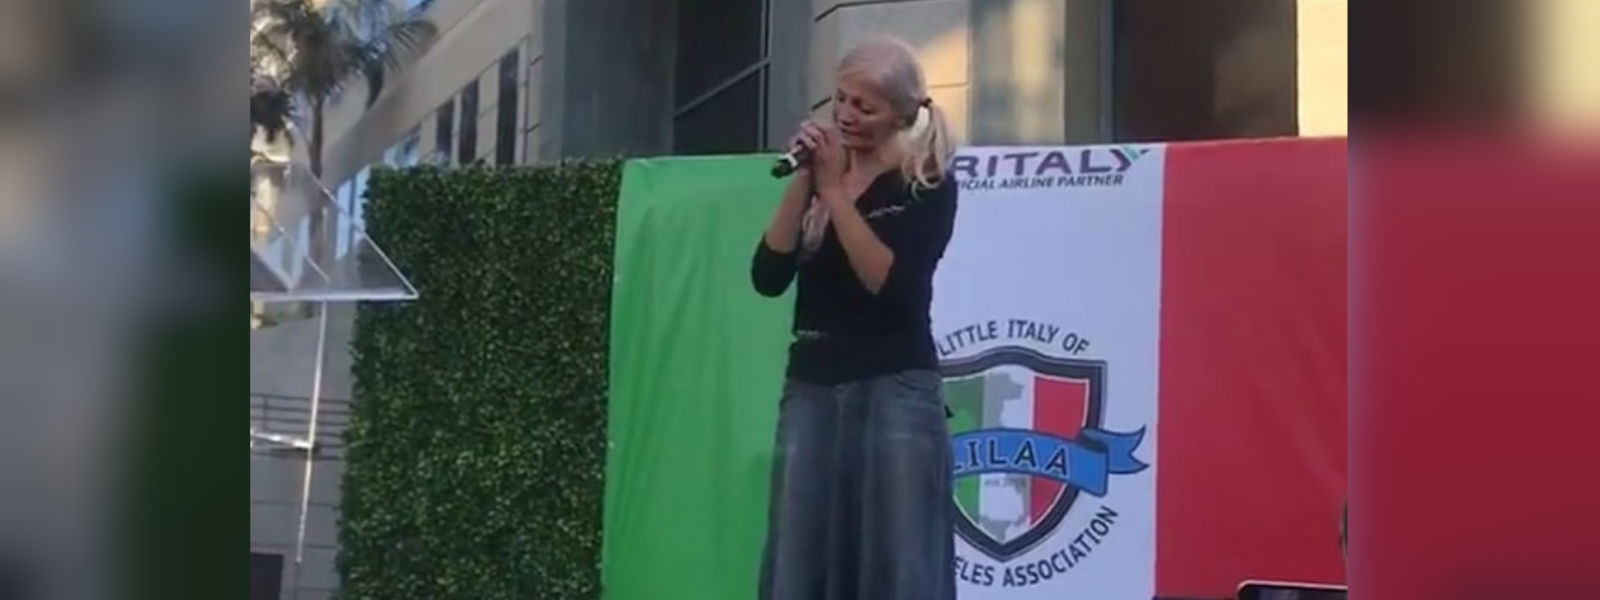 Homeless subway opera singer gets Little Italy stage